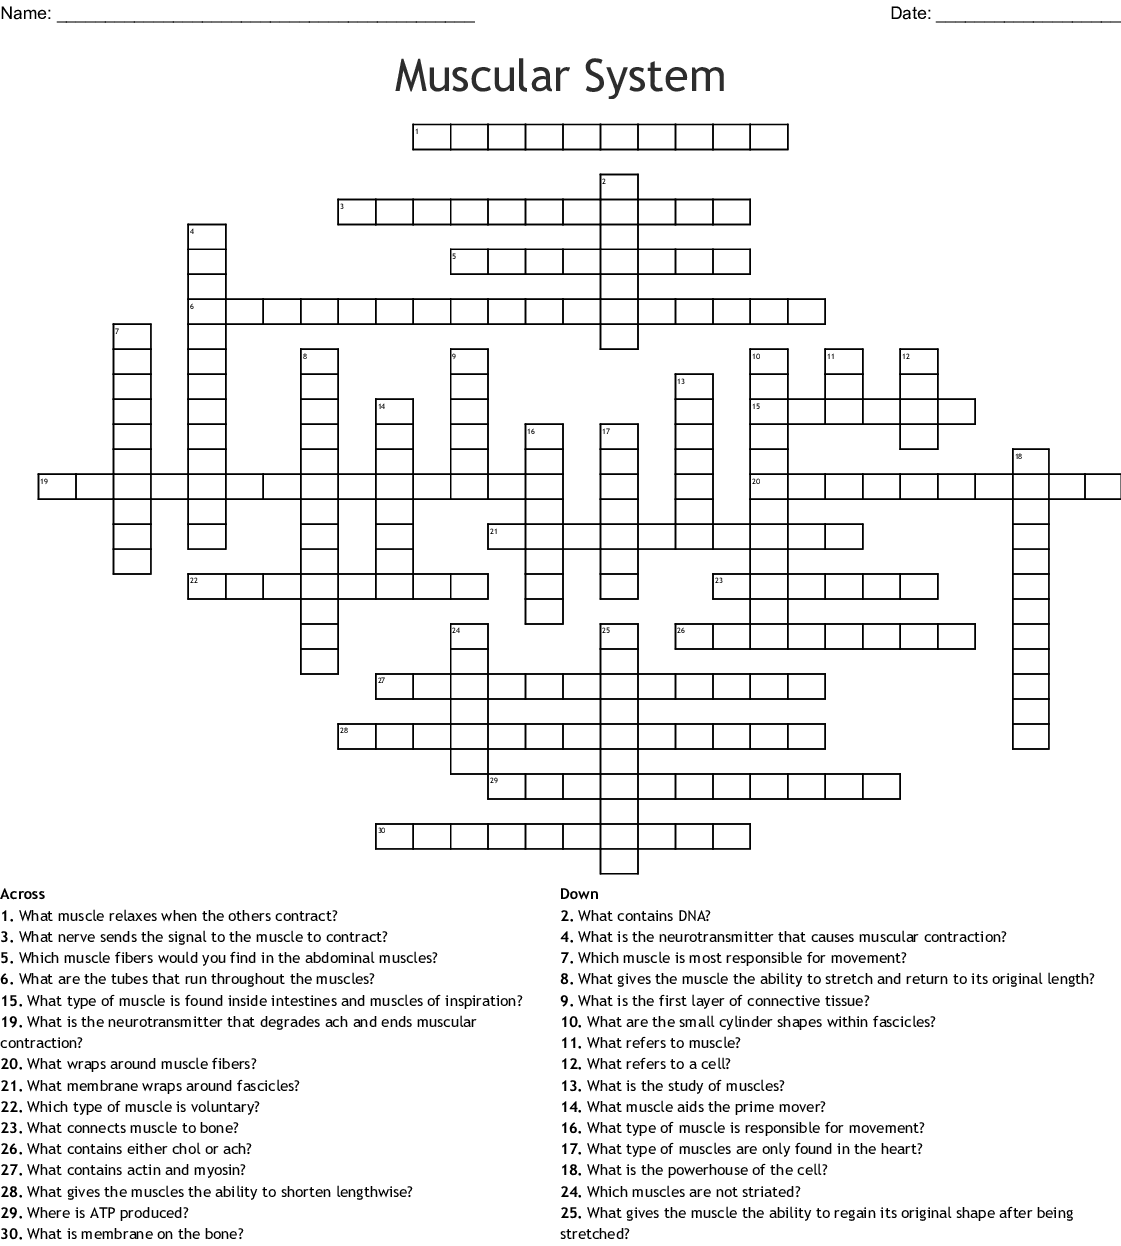 Crossword Puzzle Answer Key Skeletal And Muscular System ...